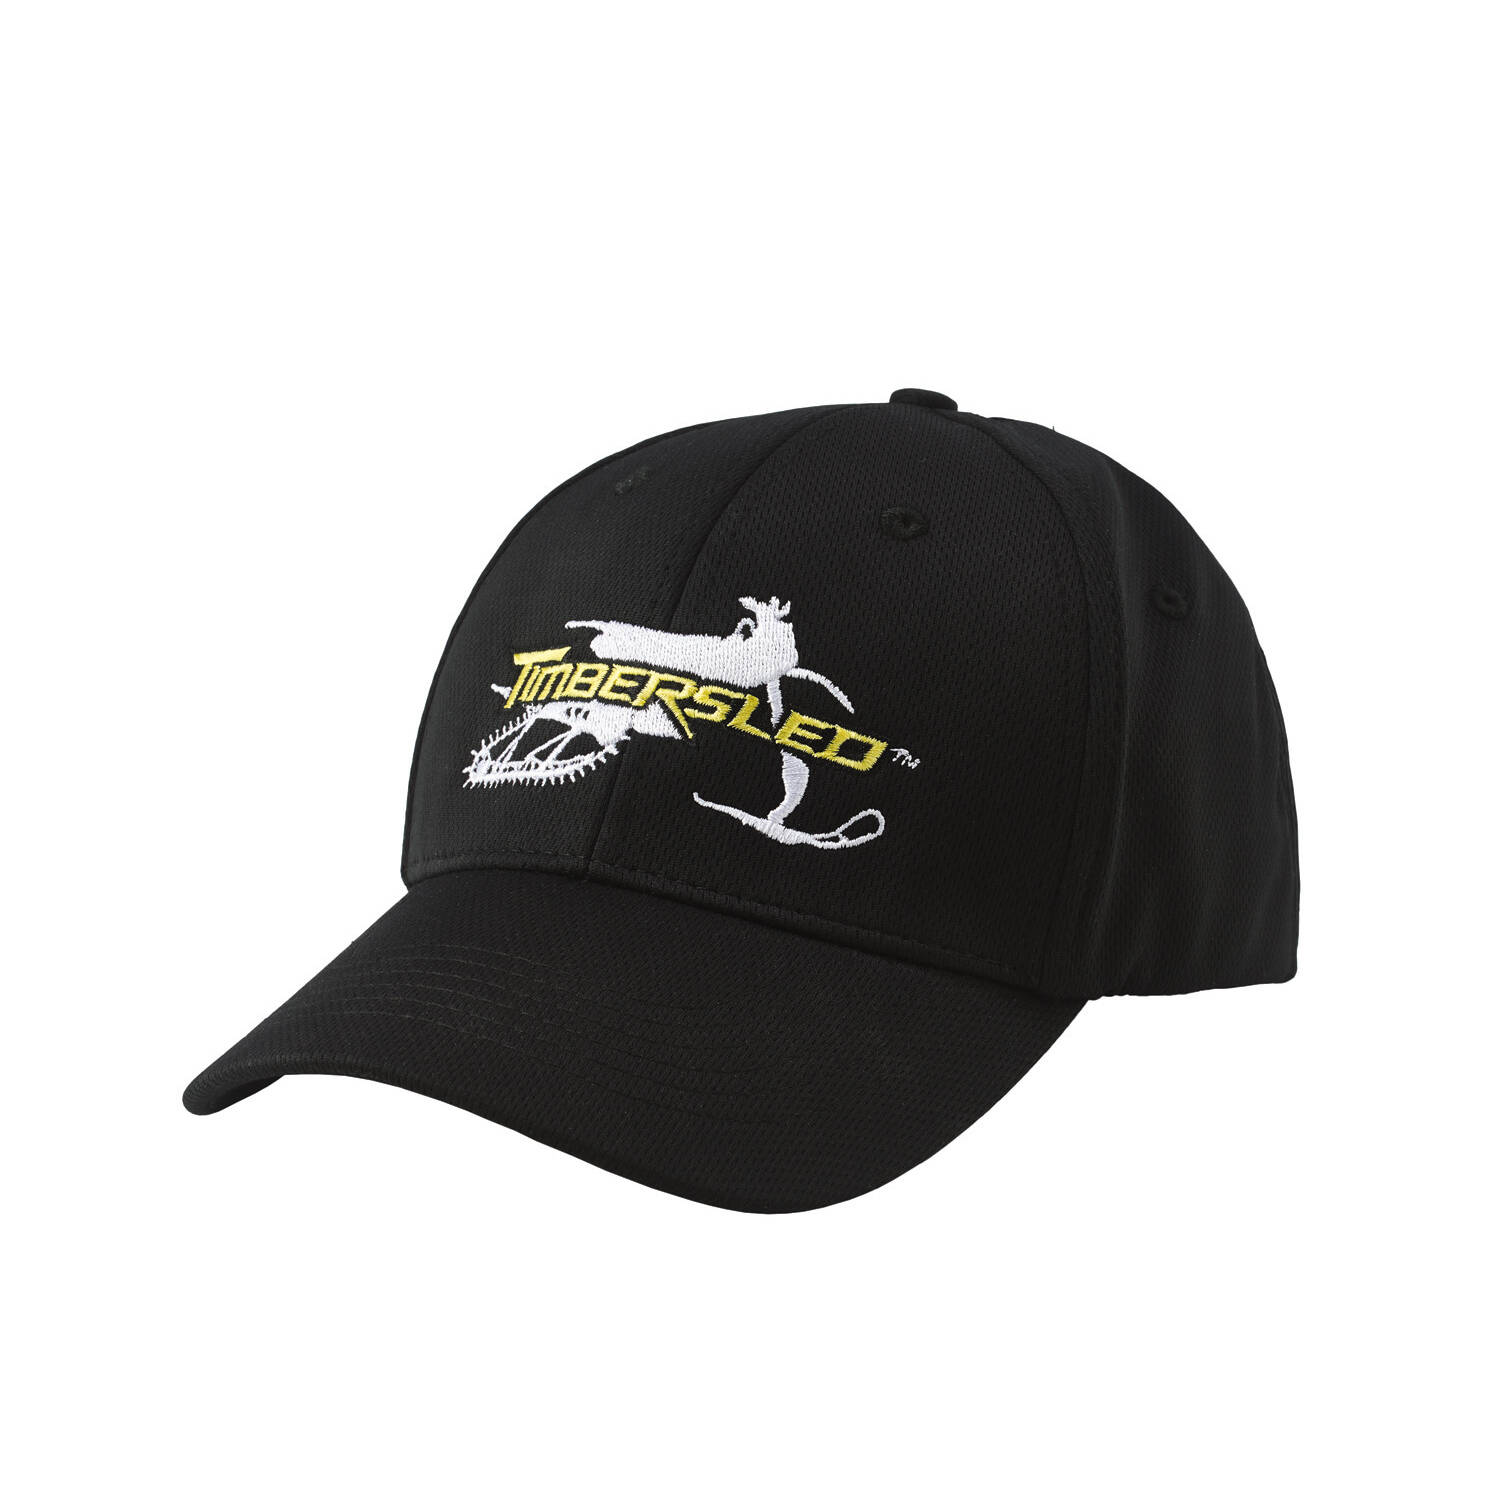 Men's Adjustable Snapback Hat with Timbersled® Graphic, Black